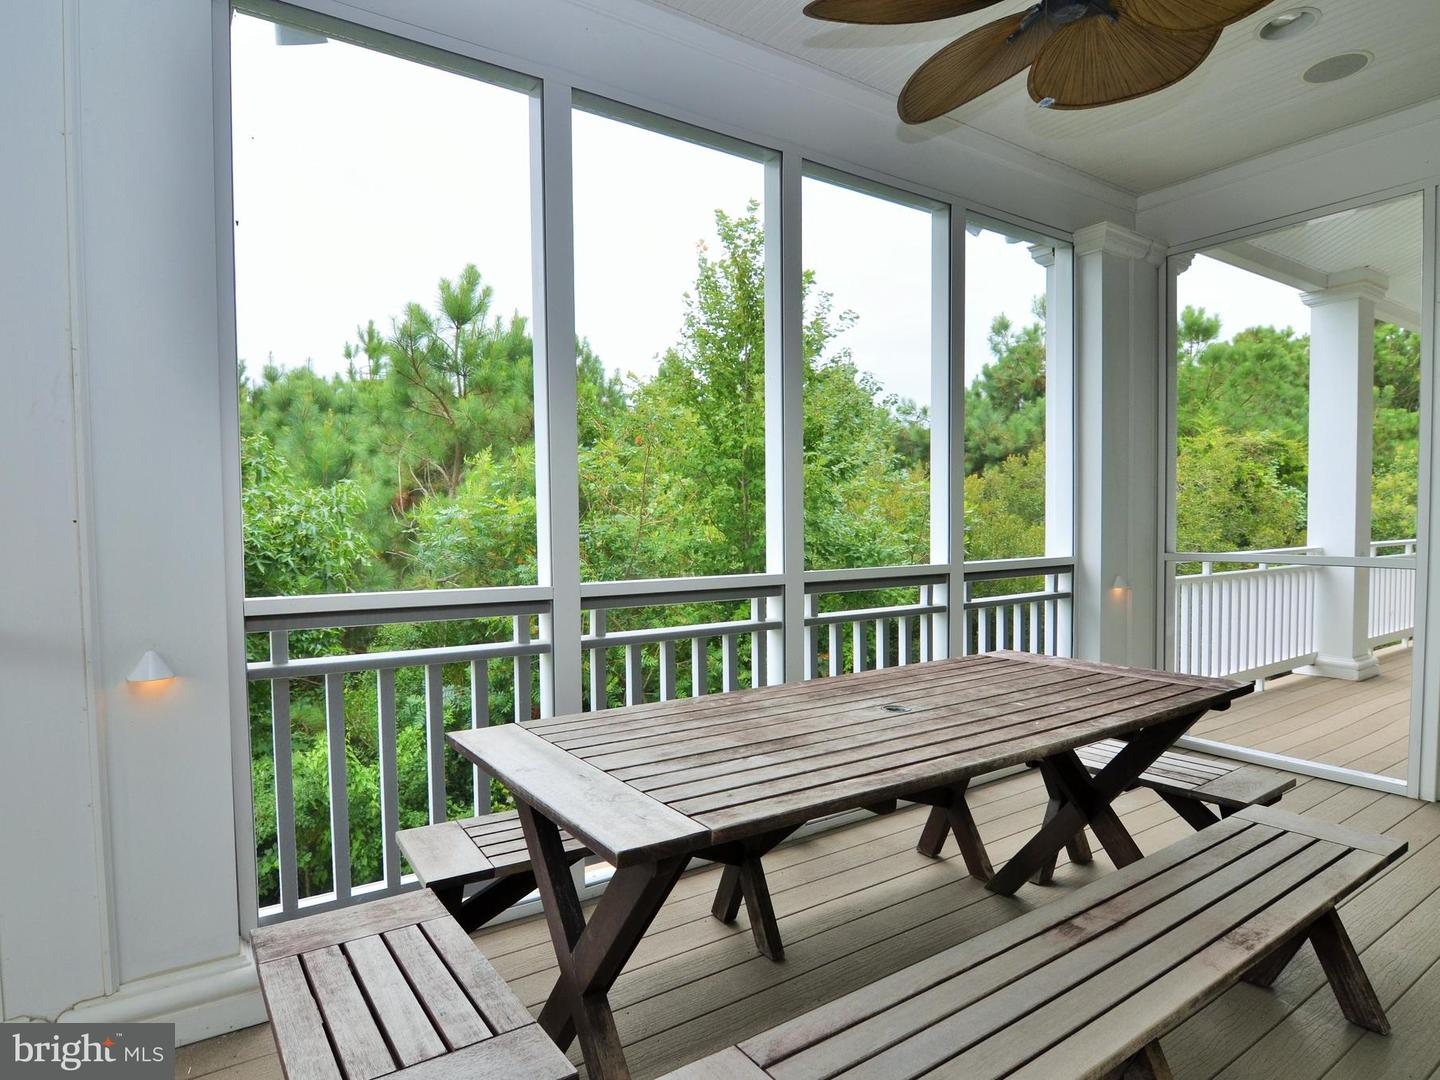 1002293530-300500807471-2018-09-25-15-08-25 31 Hall Ave | Rehoboth Beach, DE Real Estate For Sale | MLS# 1002293530  - 1st Choice Properties